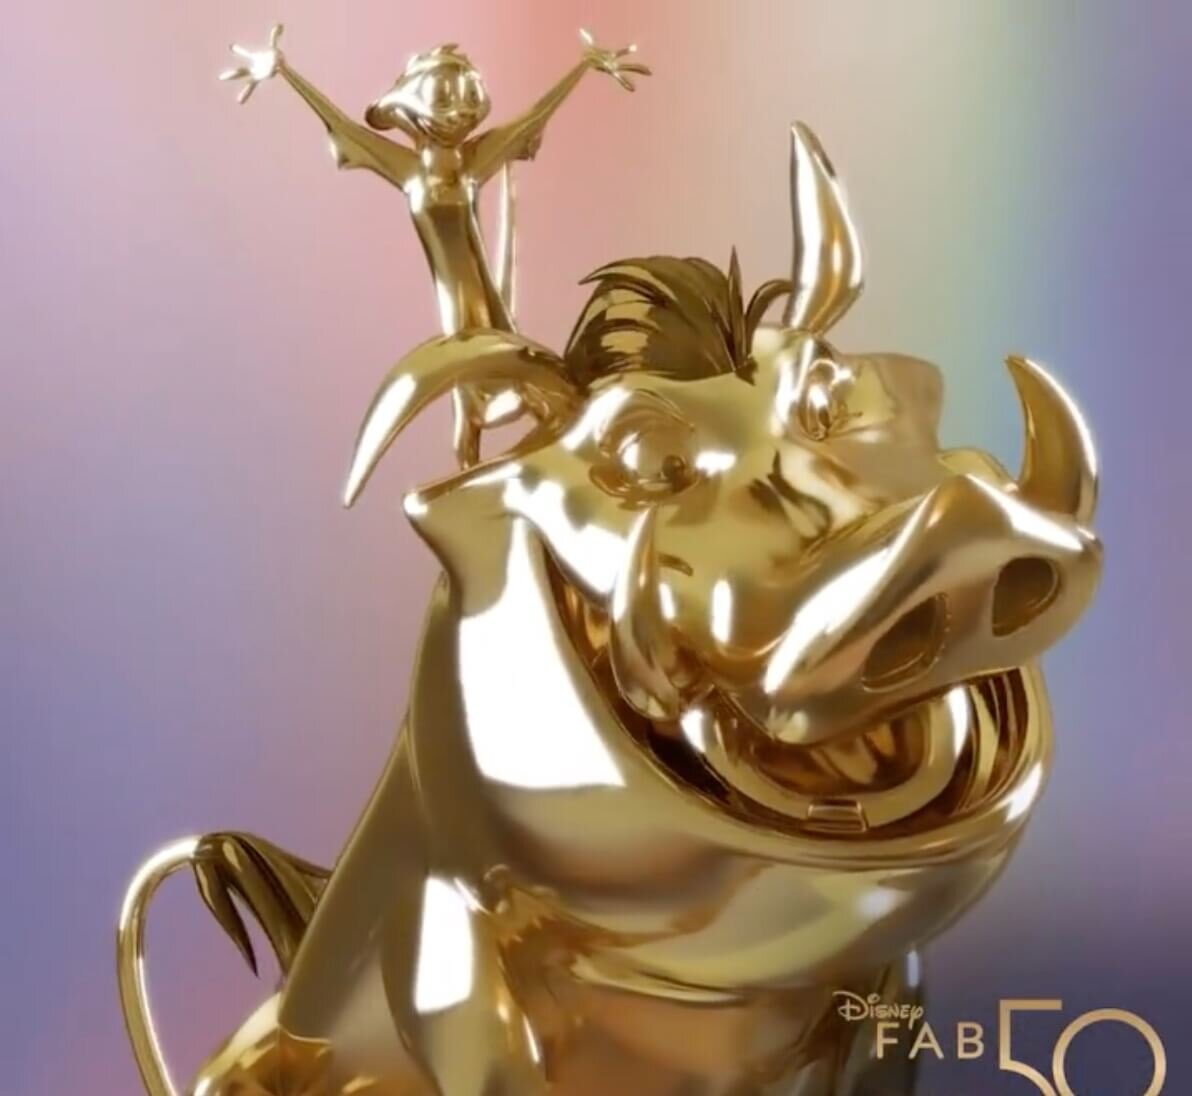 Timon and Pumba Fab 50 Gold Character Statue.jpg